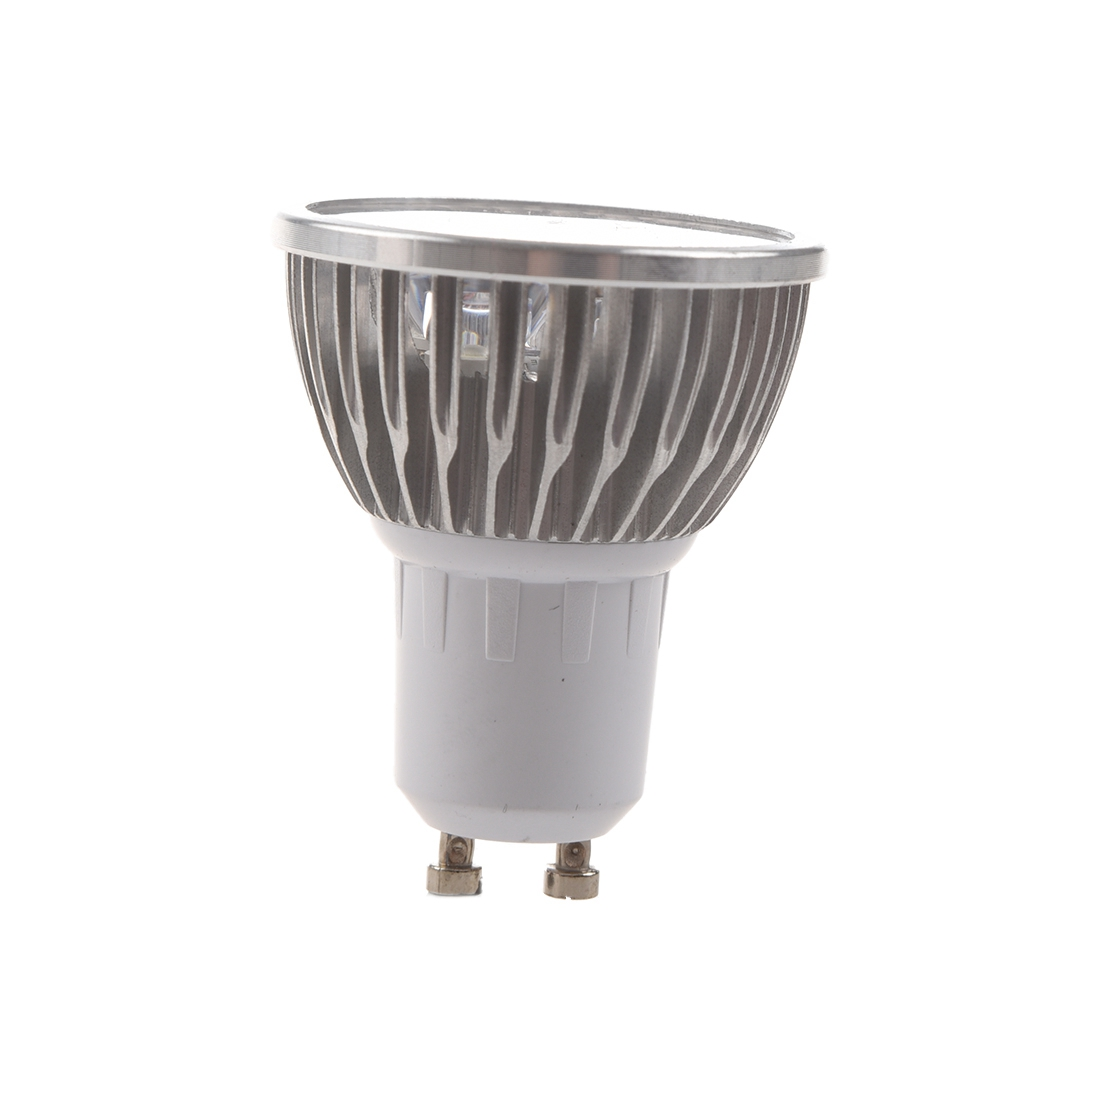 Drop shipping 4 LED GU10 Light Bulb 4W Cold White 85-265V